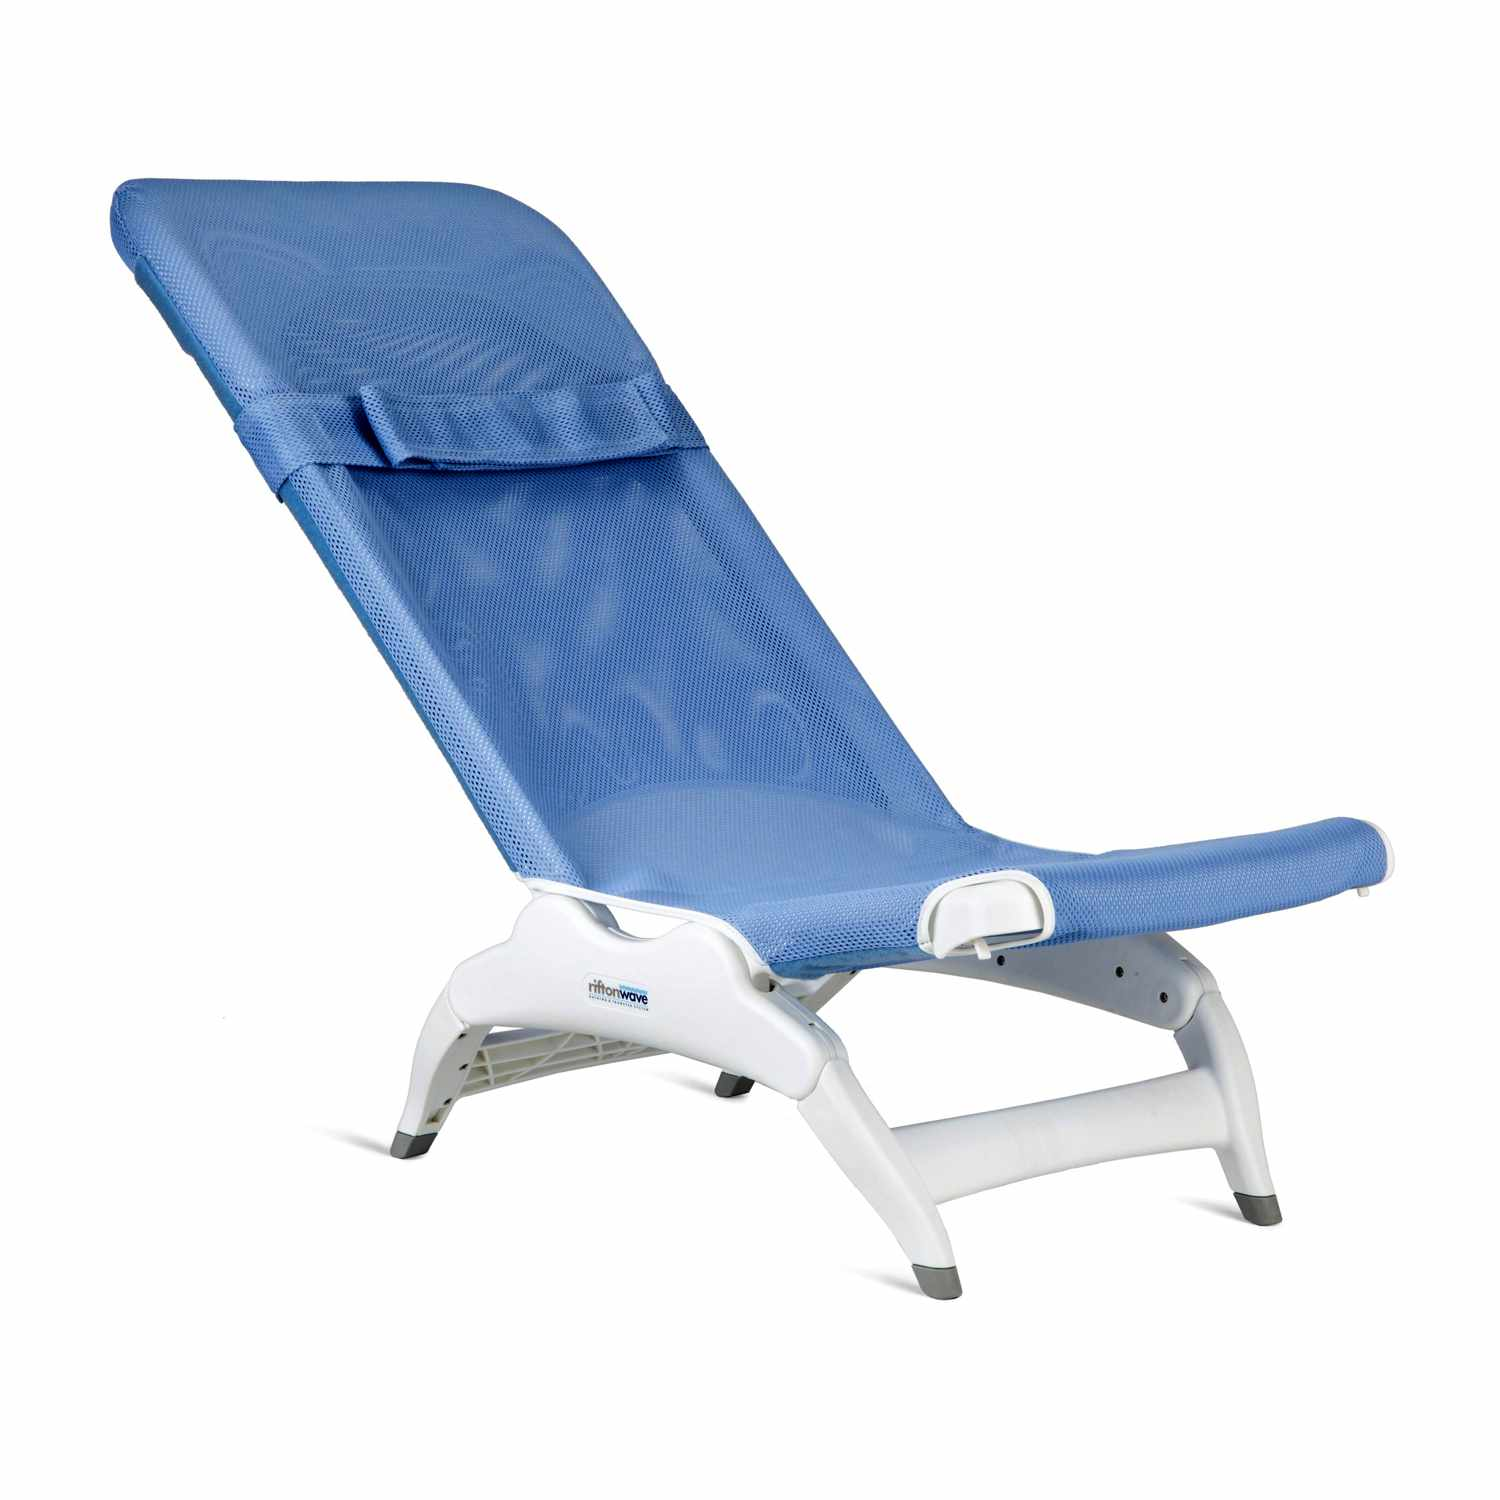 Rifton wave bath chair - large